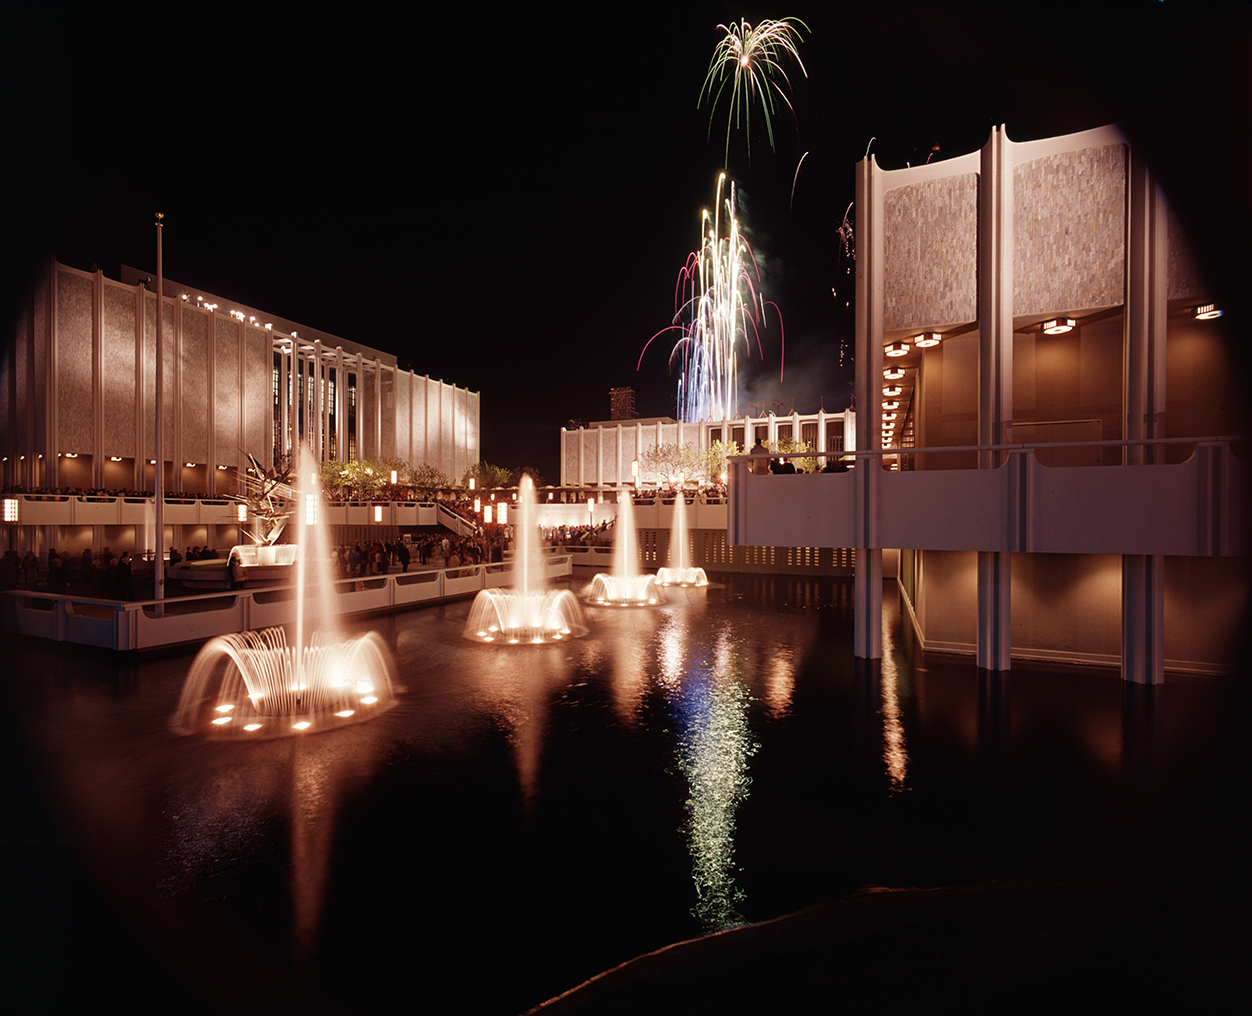 Opening of LACMA and Atrium, Ahmanson Gallery of Art, 1965